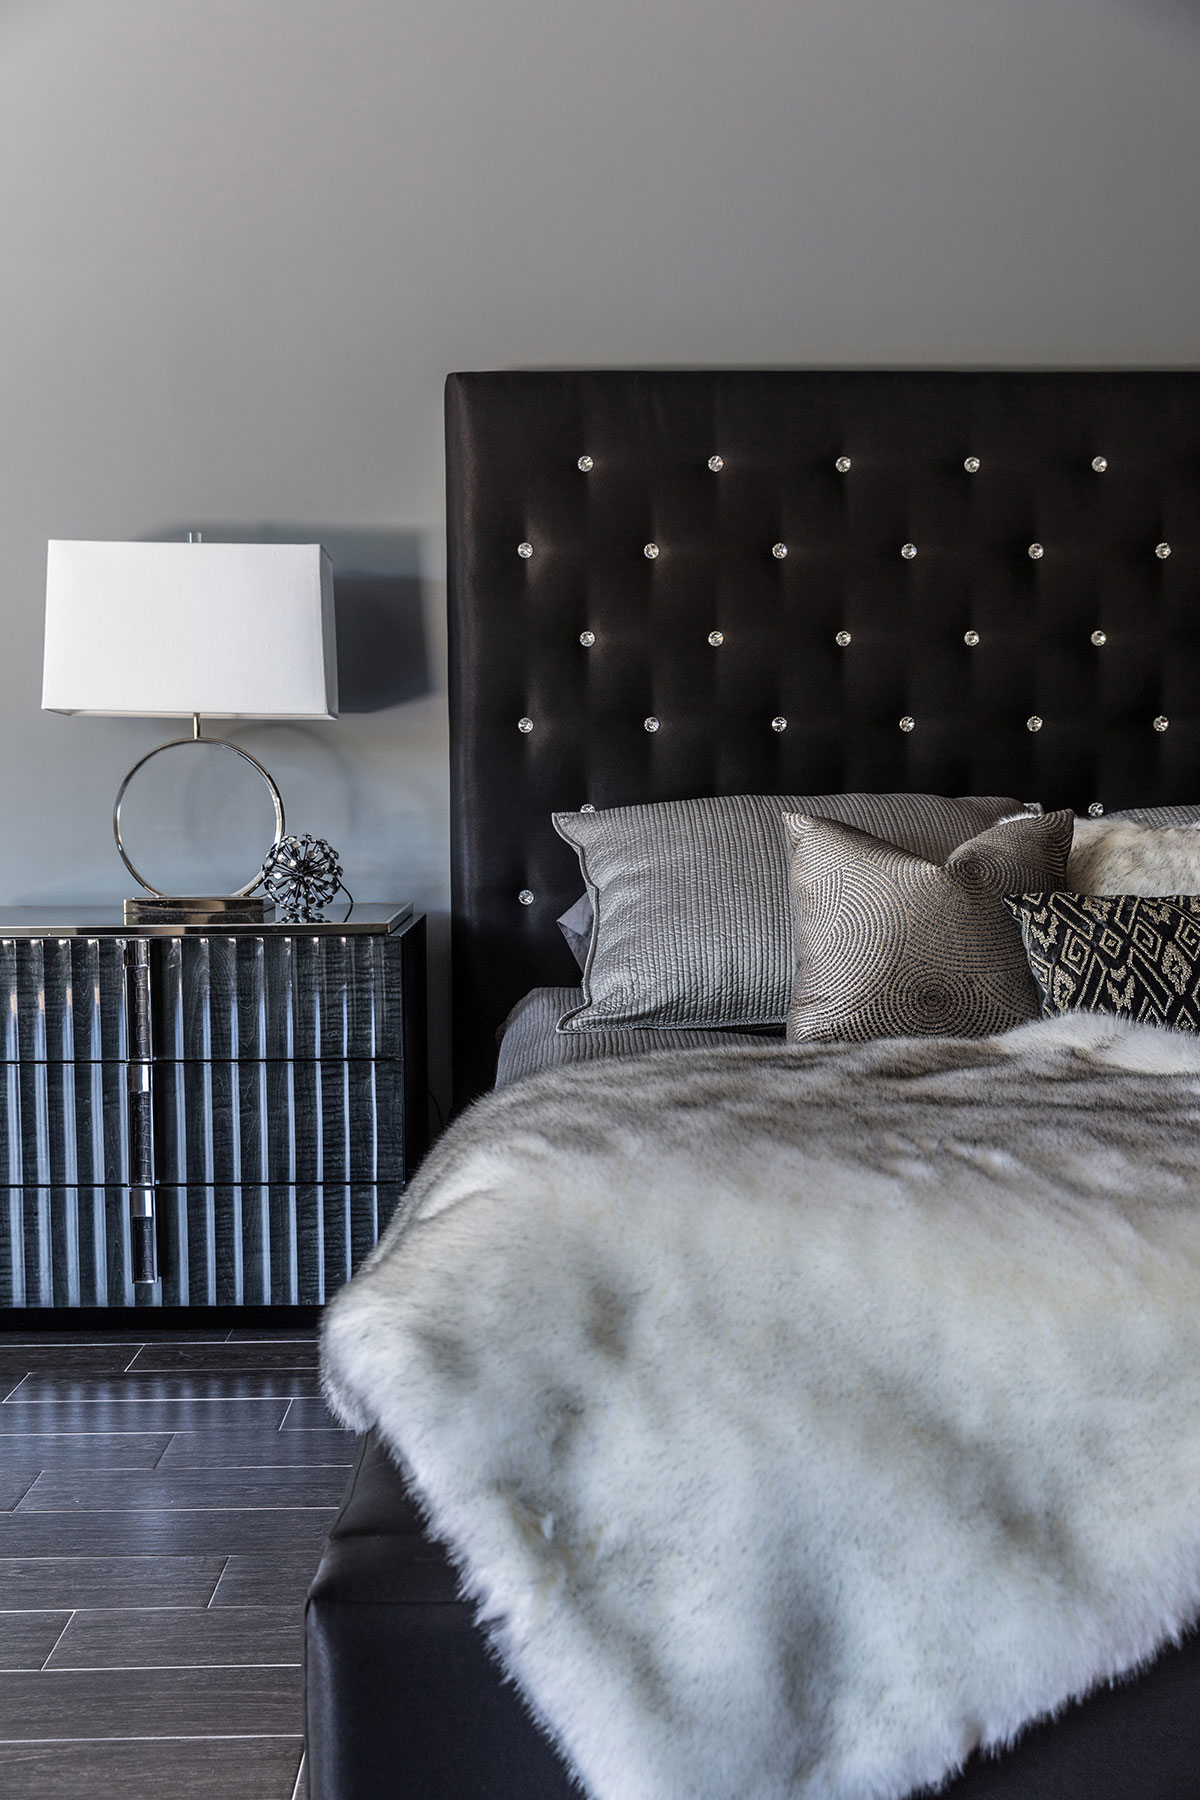 Design by Pam Satterly for Cantoni Atlanta | Photo by Laura Sumrak